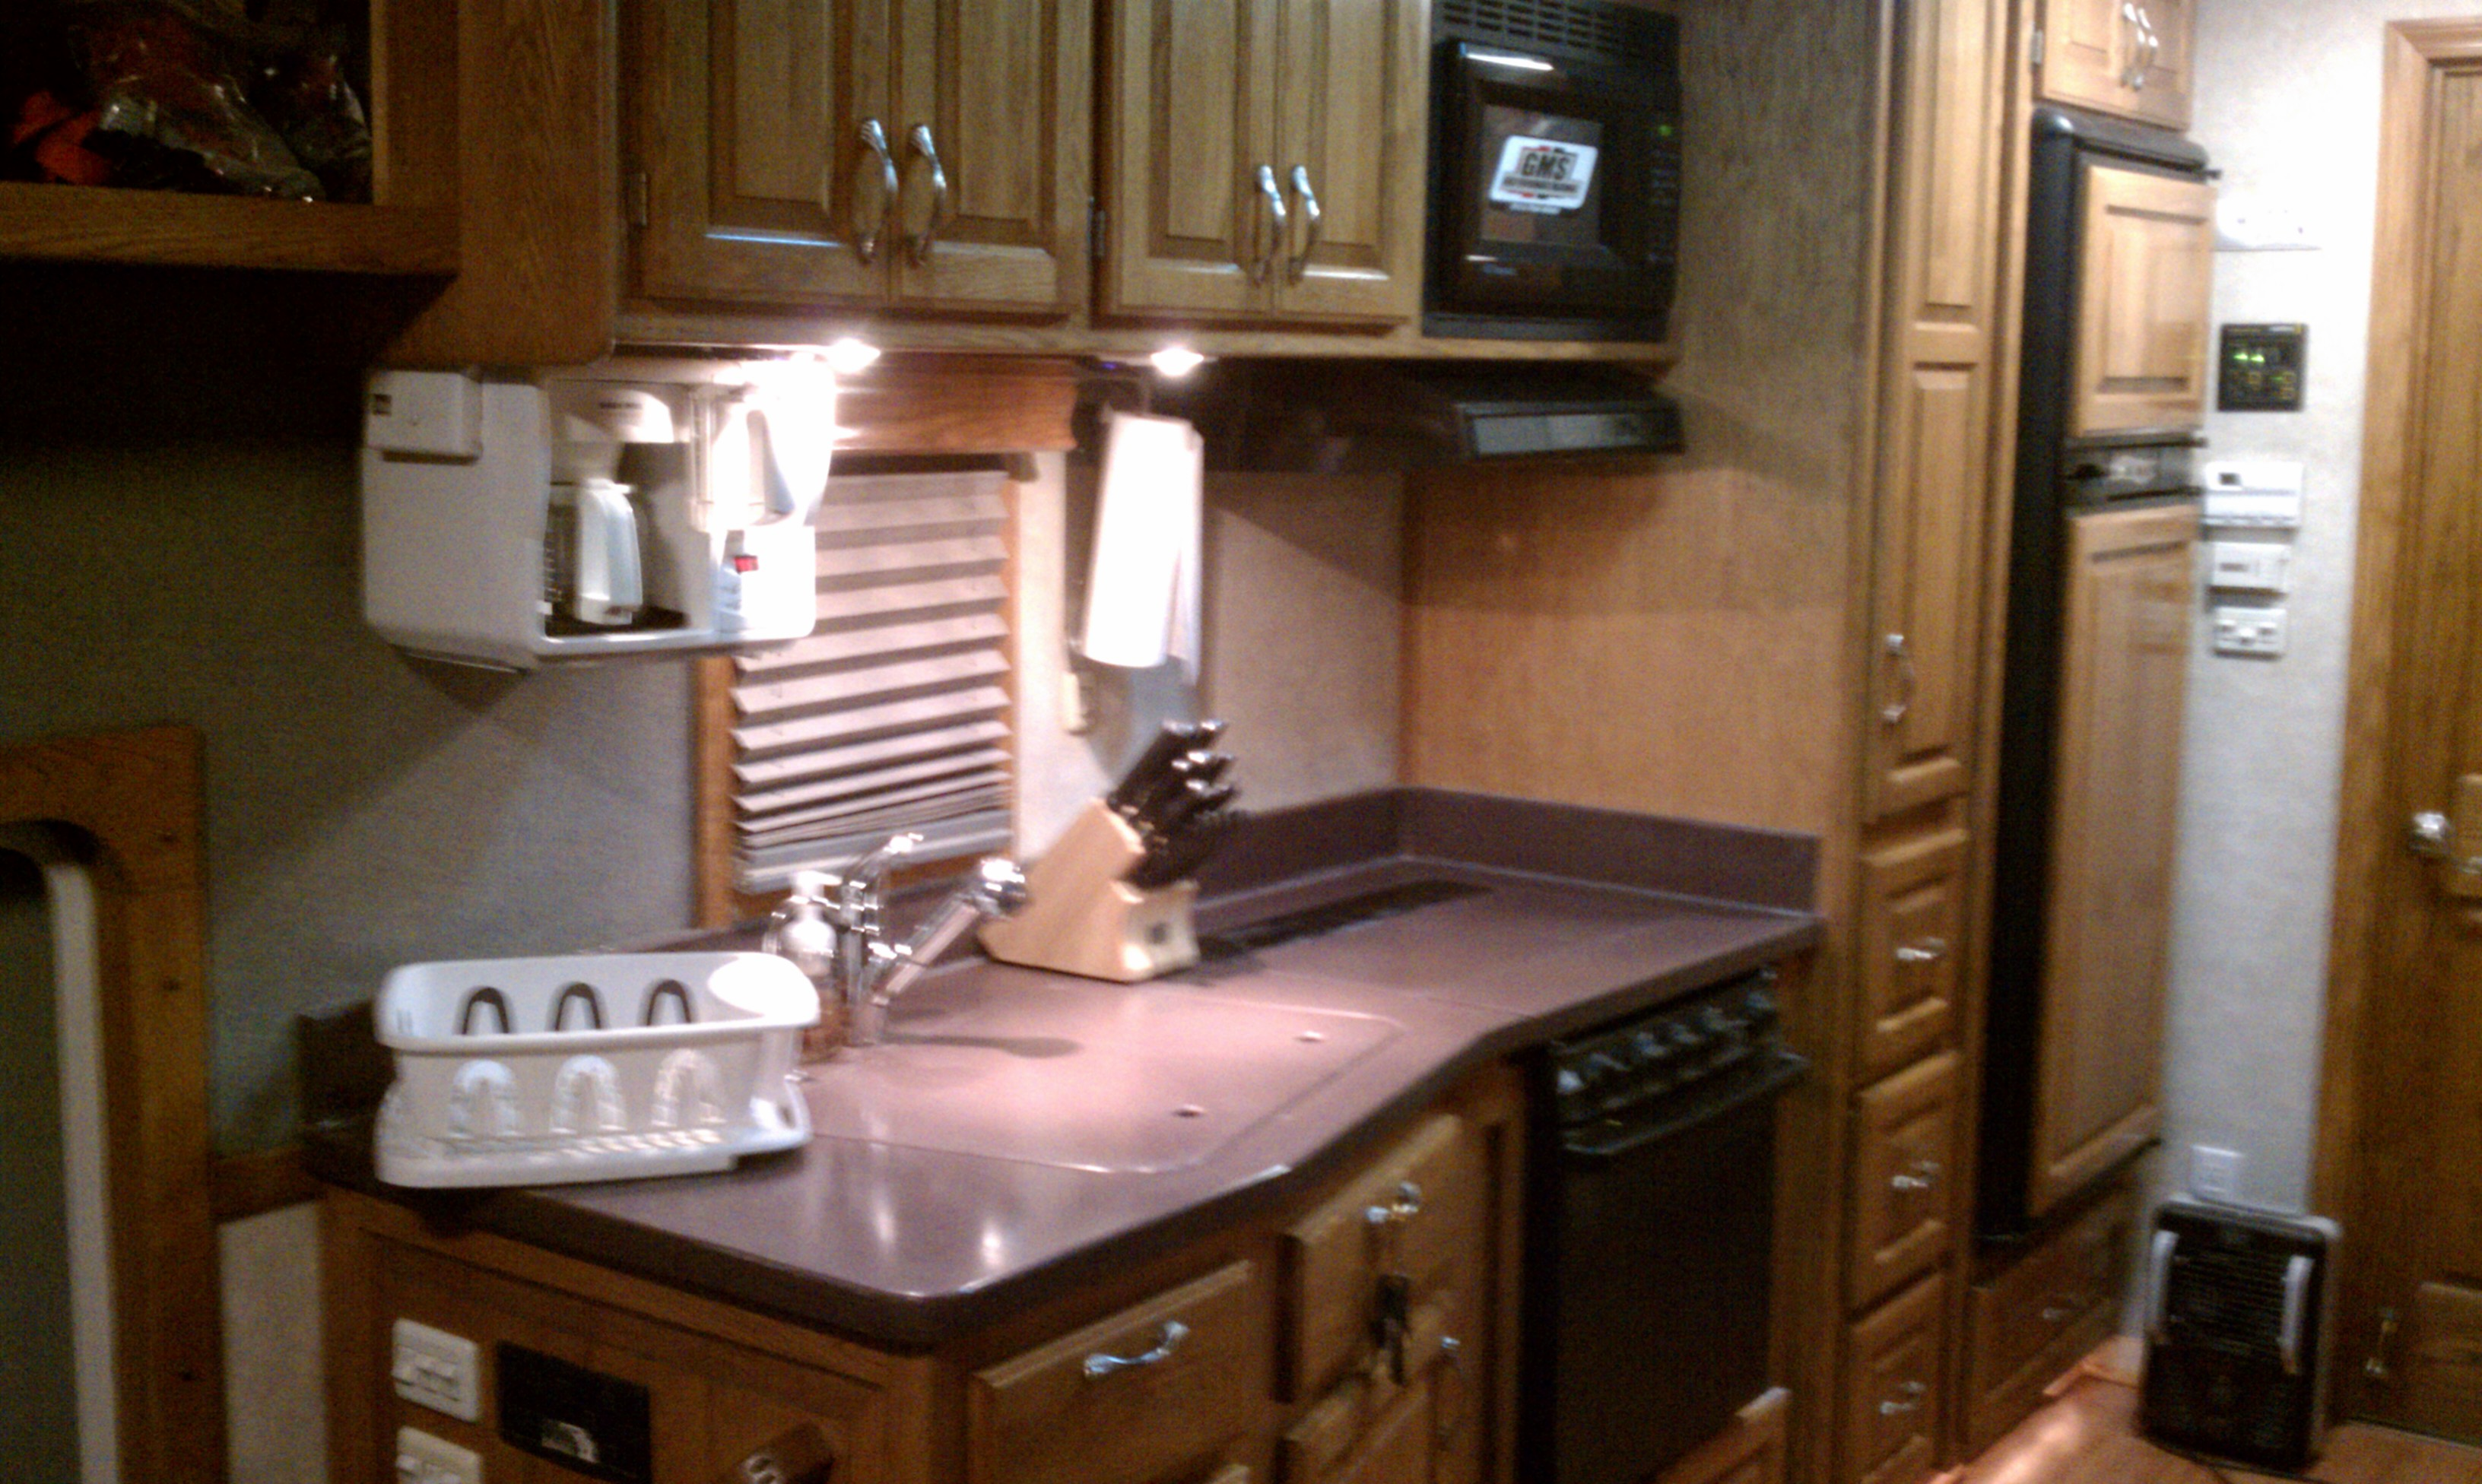 microwave convection oven and range